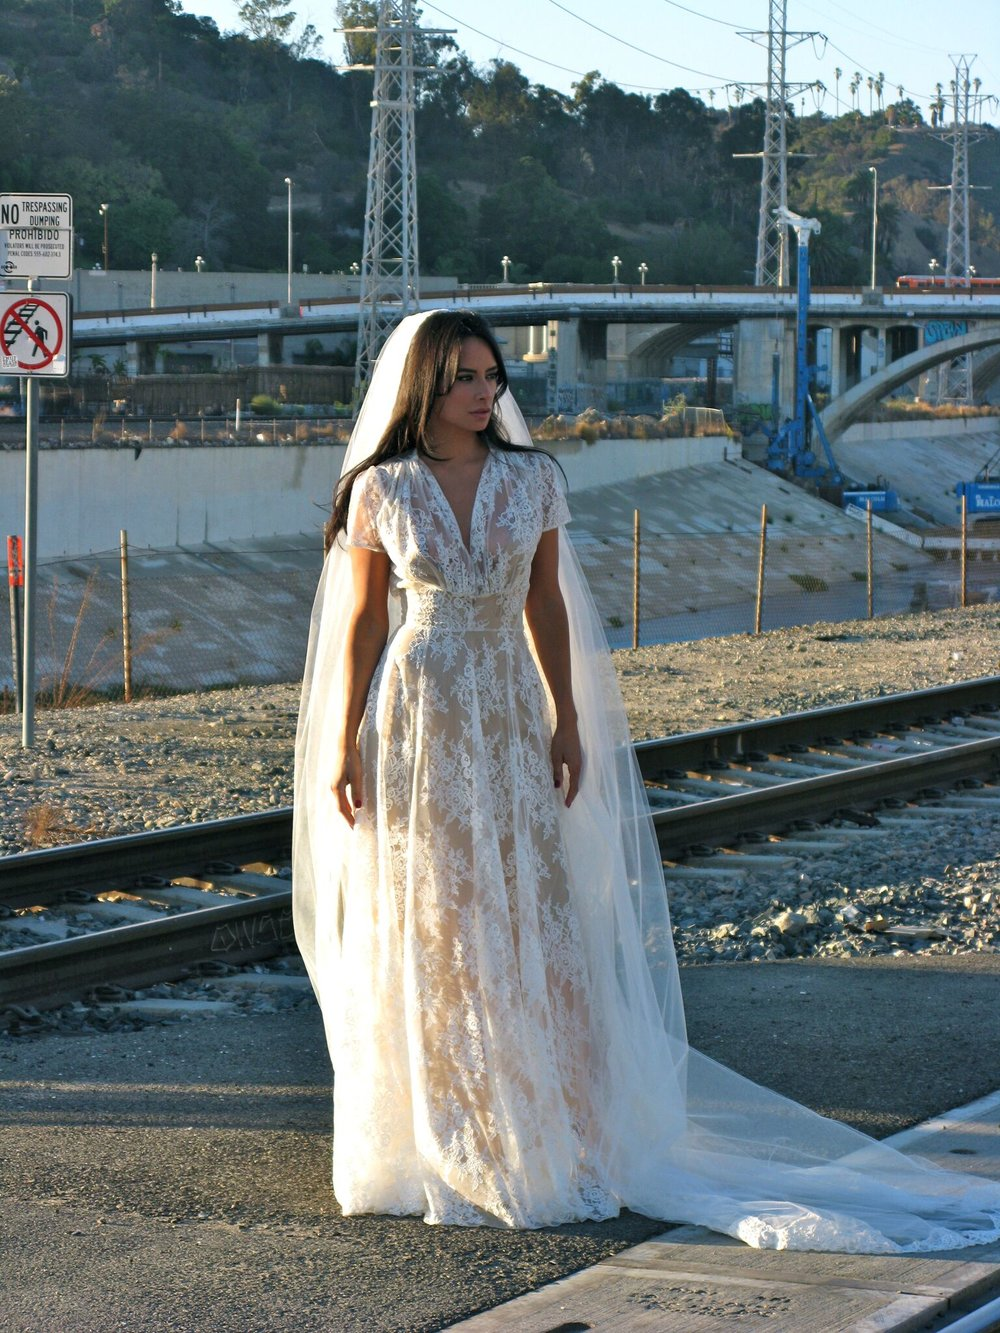 Michael in Lace_preview.jpeg